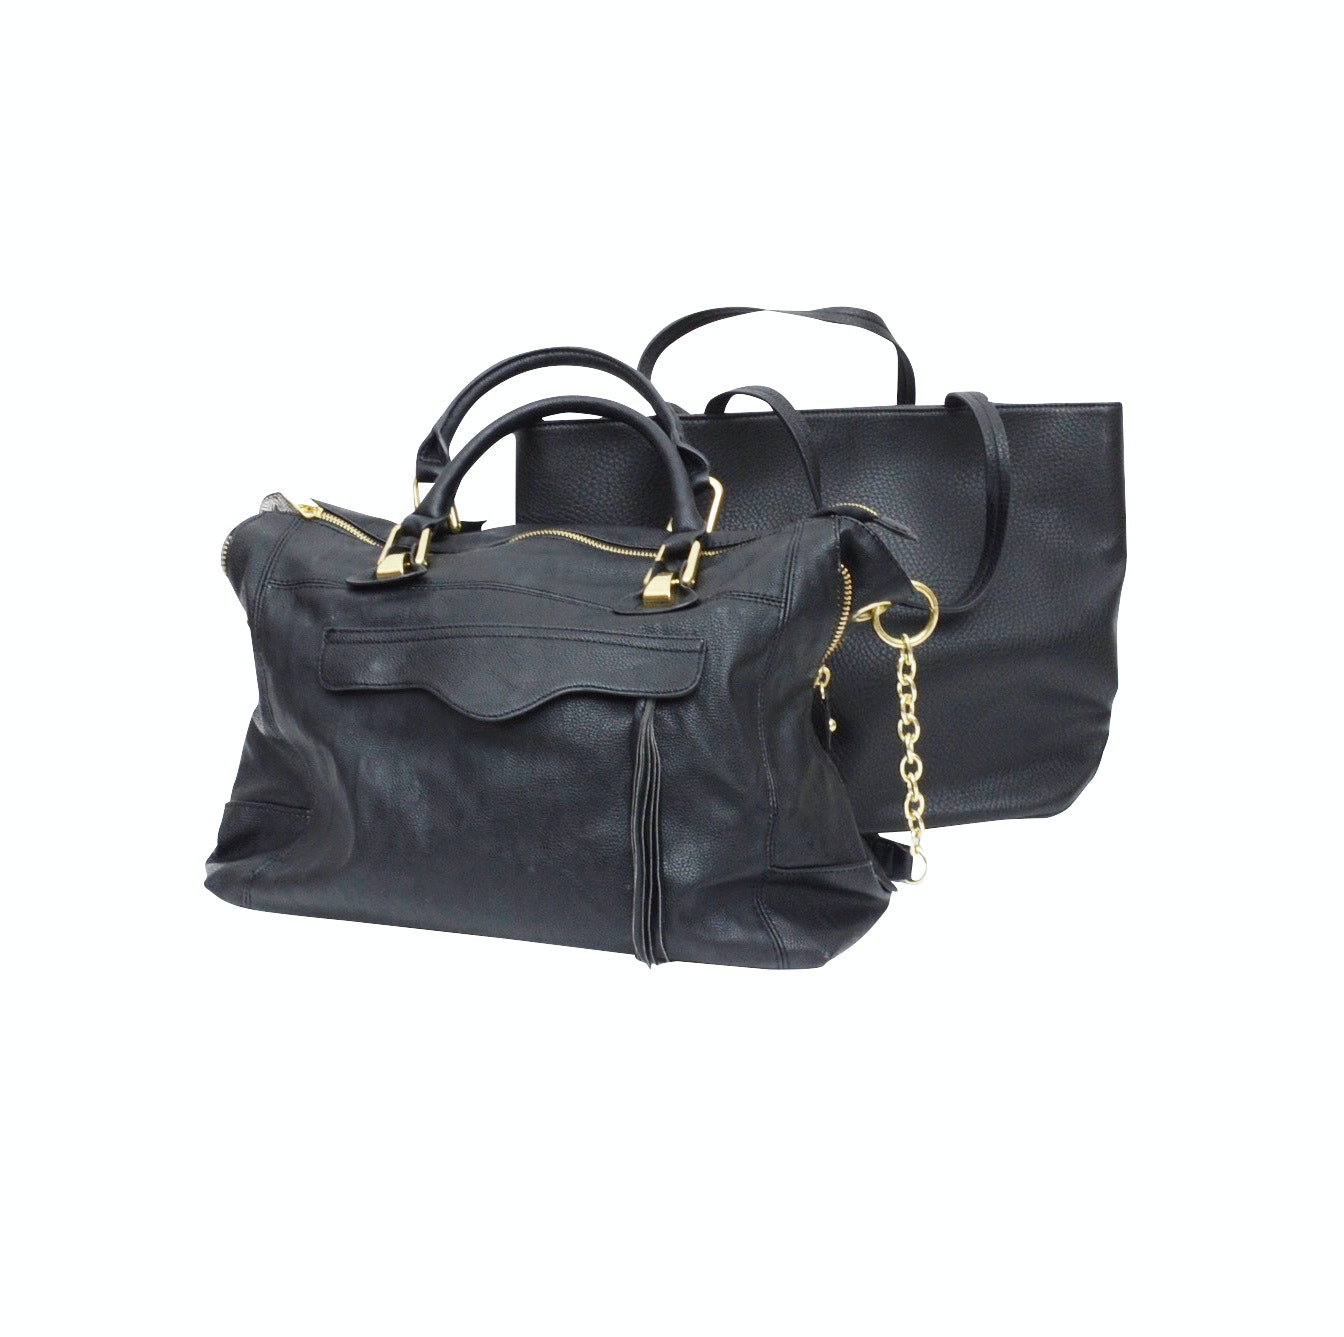 Steve Madden and Kenneth Cole Reaction Black Shoulder Bags